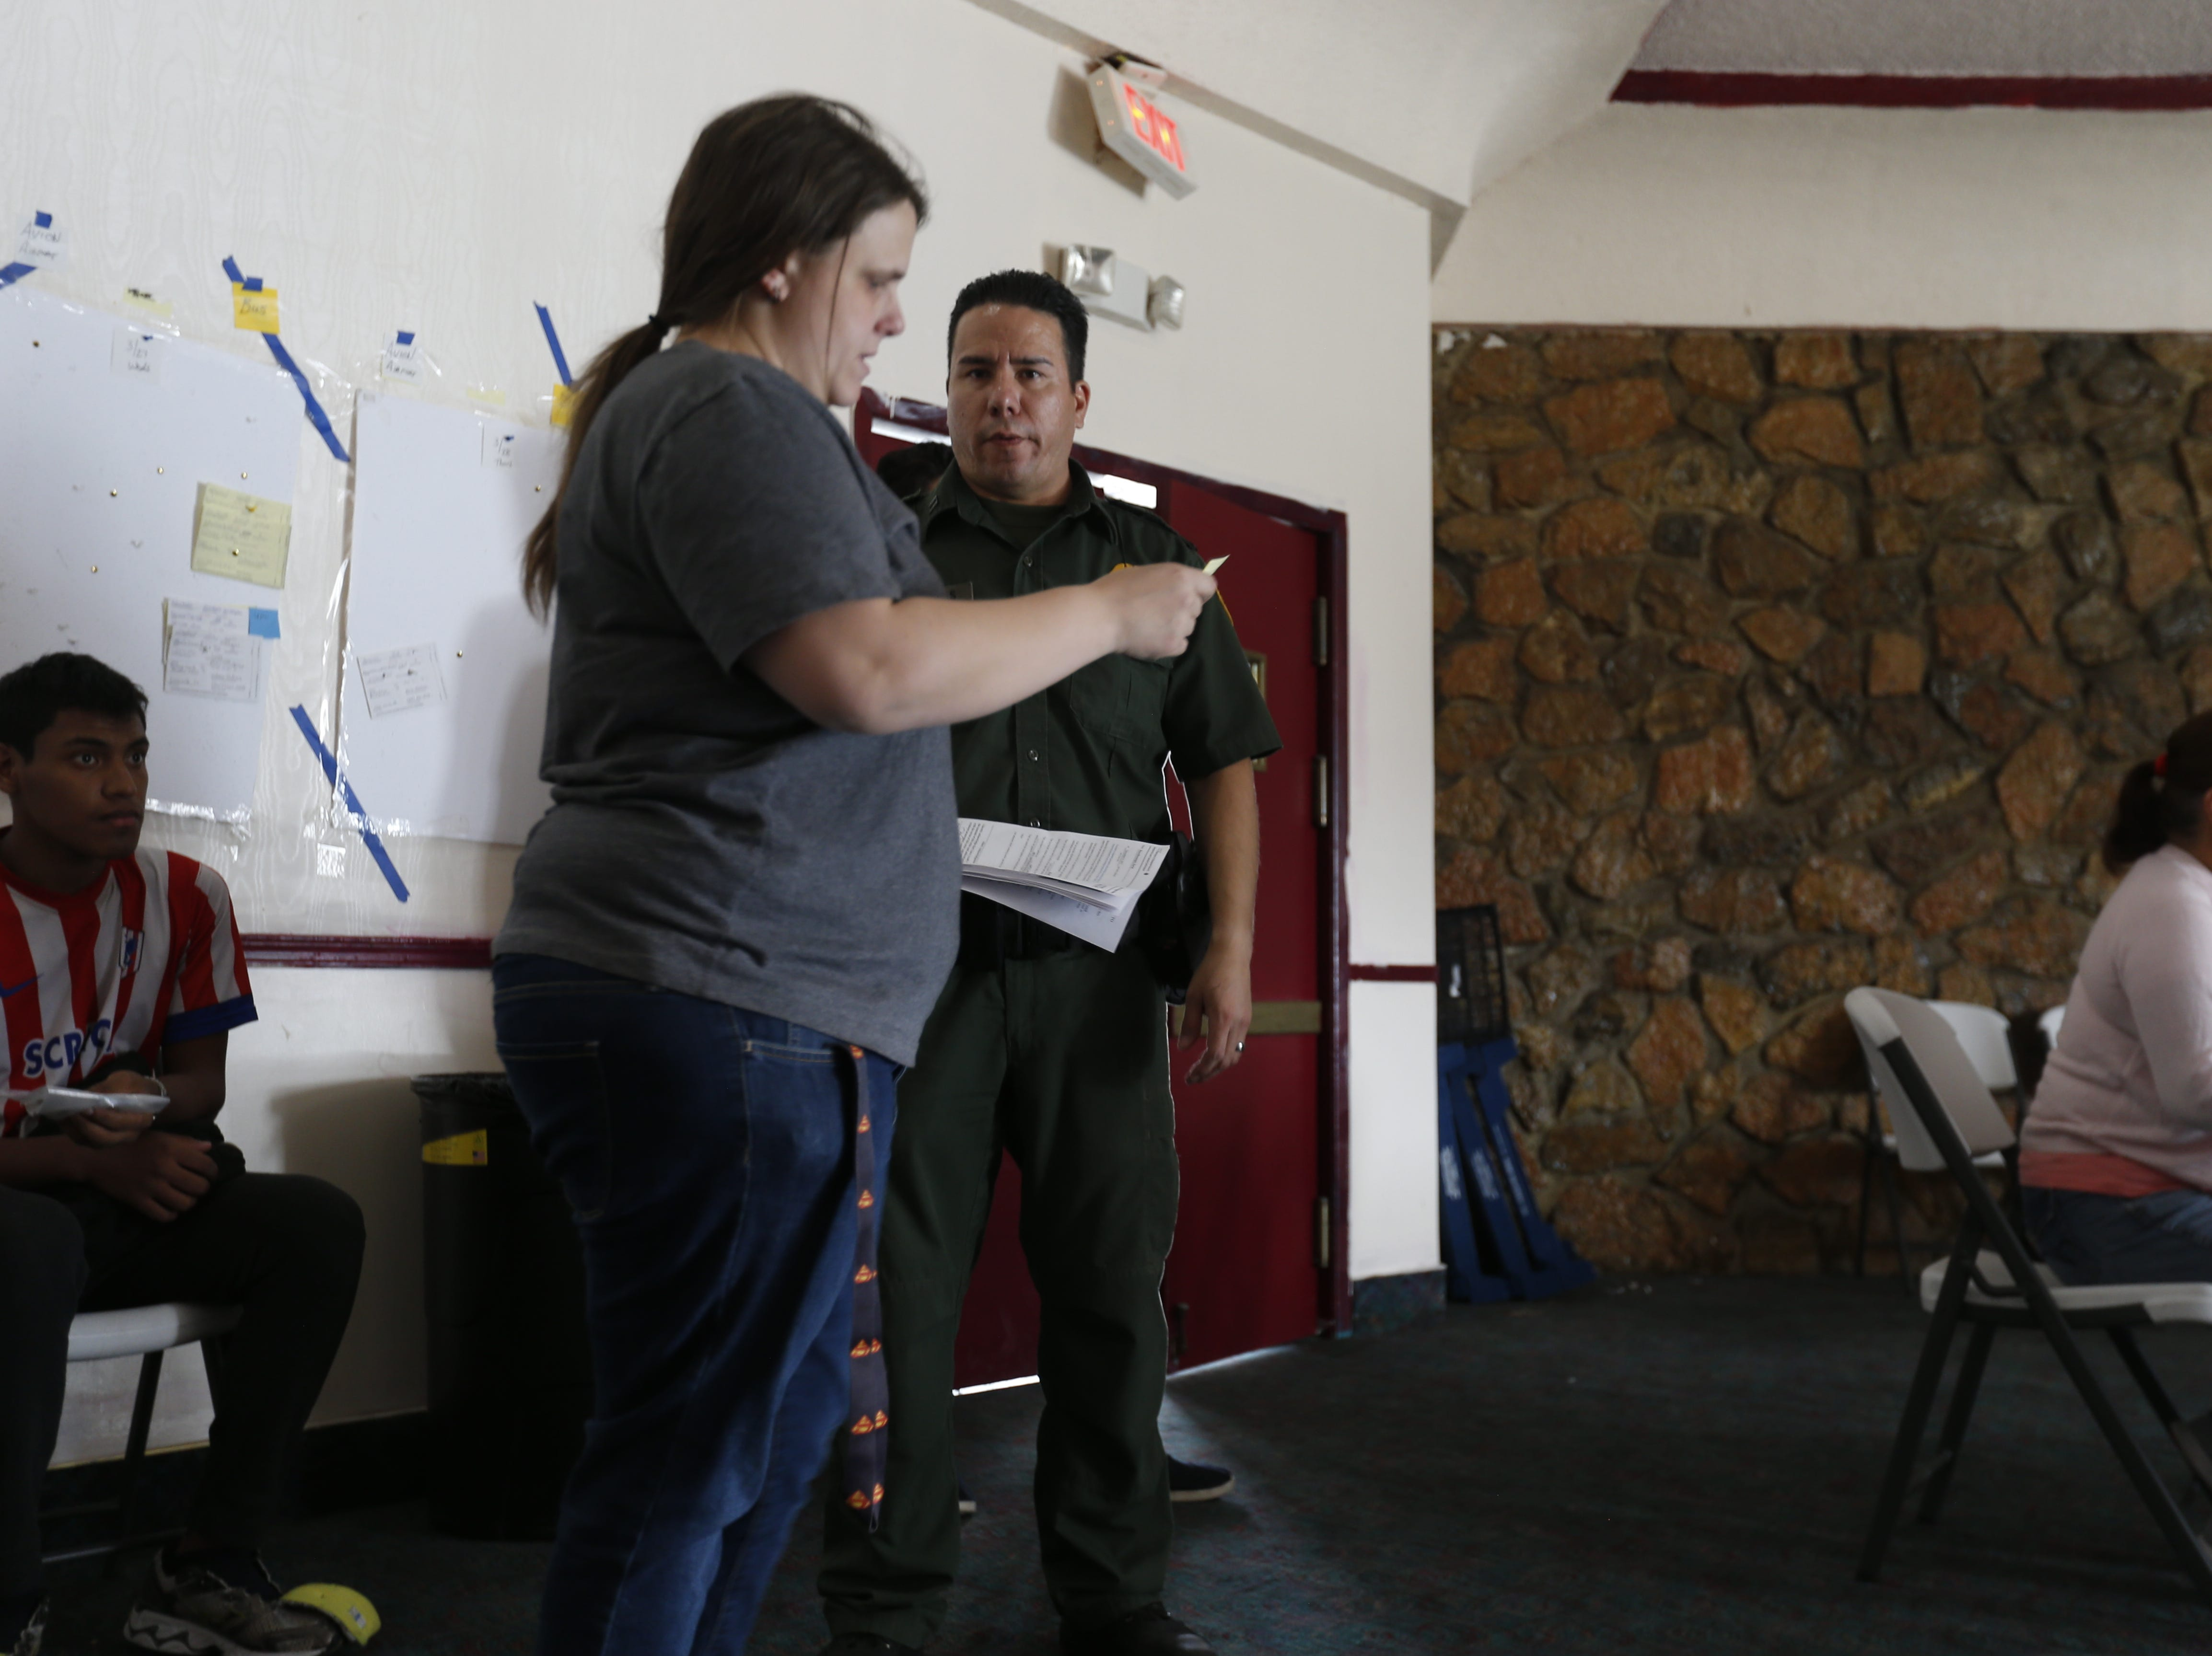 A U.S. Border Patrol agent visits with Annunciation House volunteer Mary Bull after bringing a migrant with special needs.